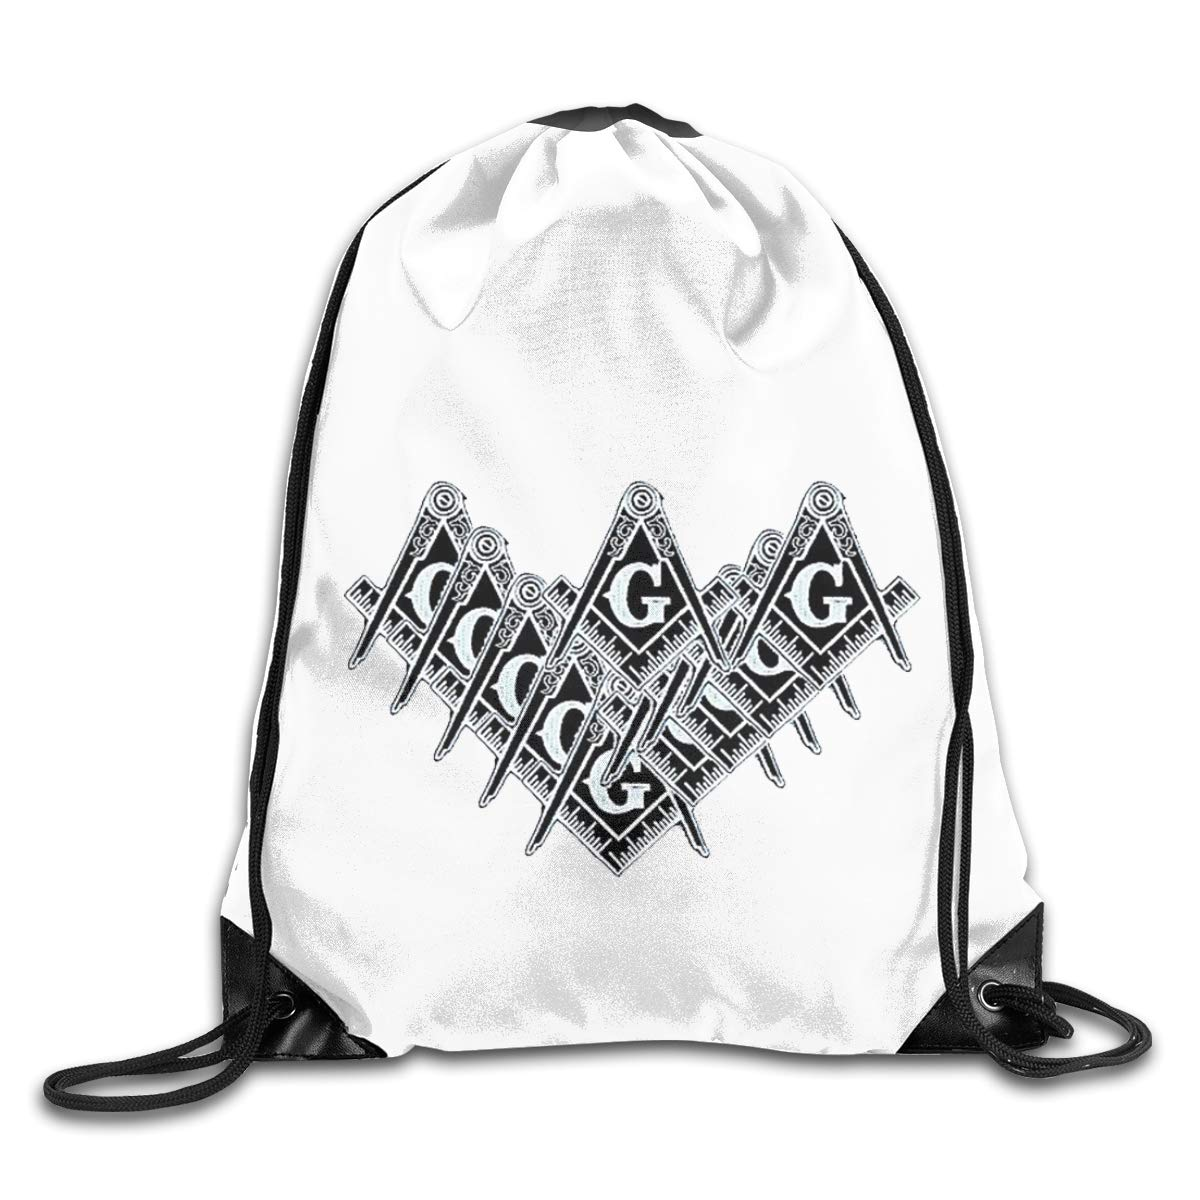 Freemason Logo Square And Compass Drawstring Bags Eat Sleep Dance Repeat Beam Mouth Backpack Basketball Tennis Gympack